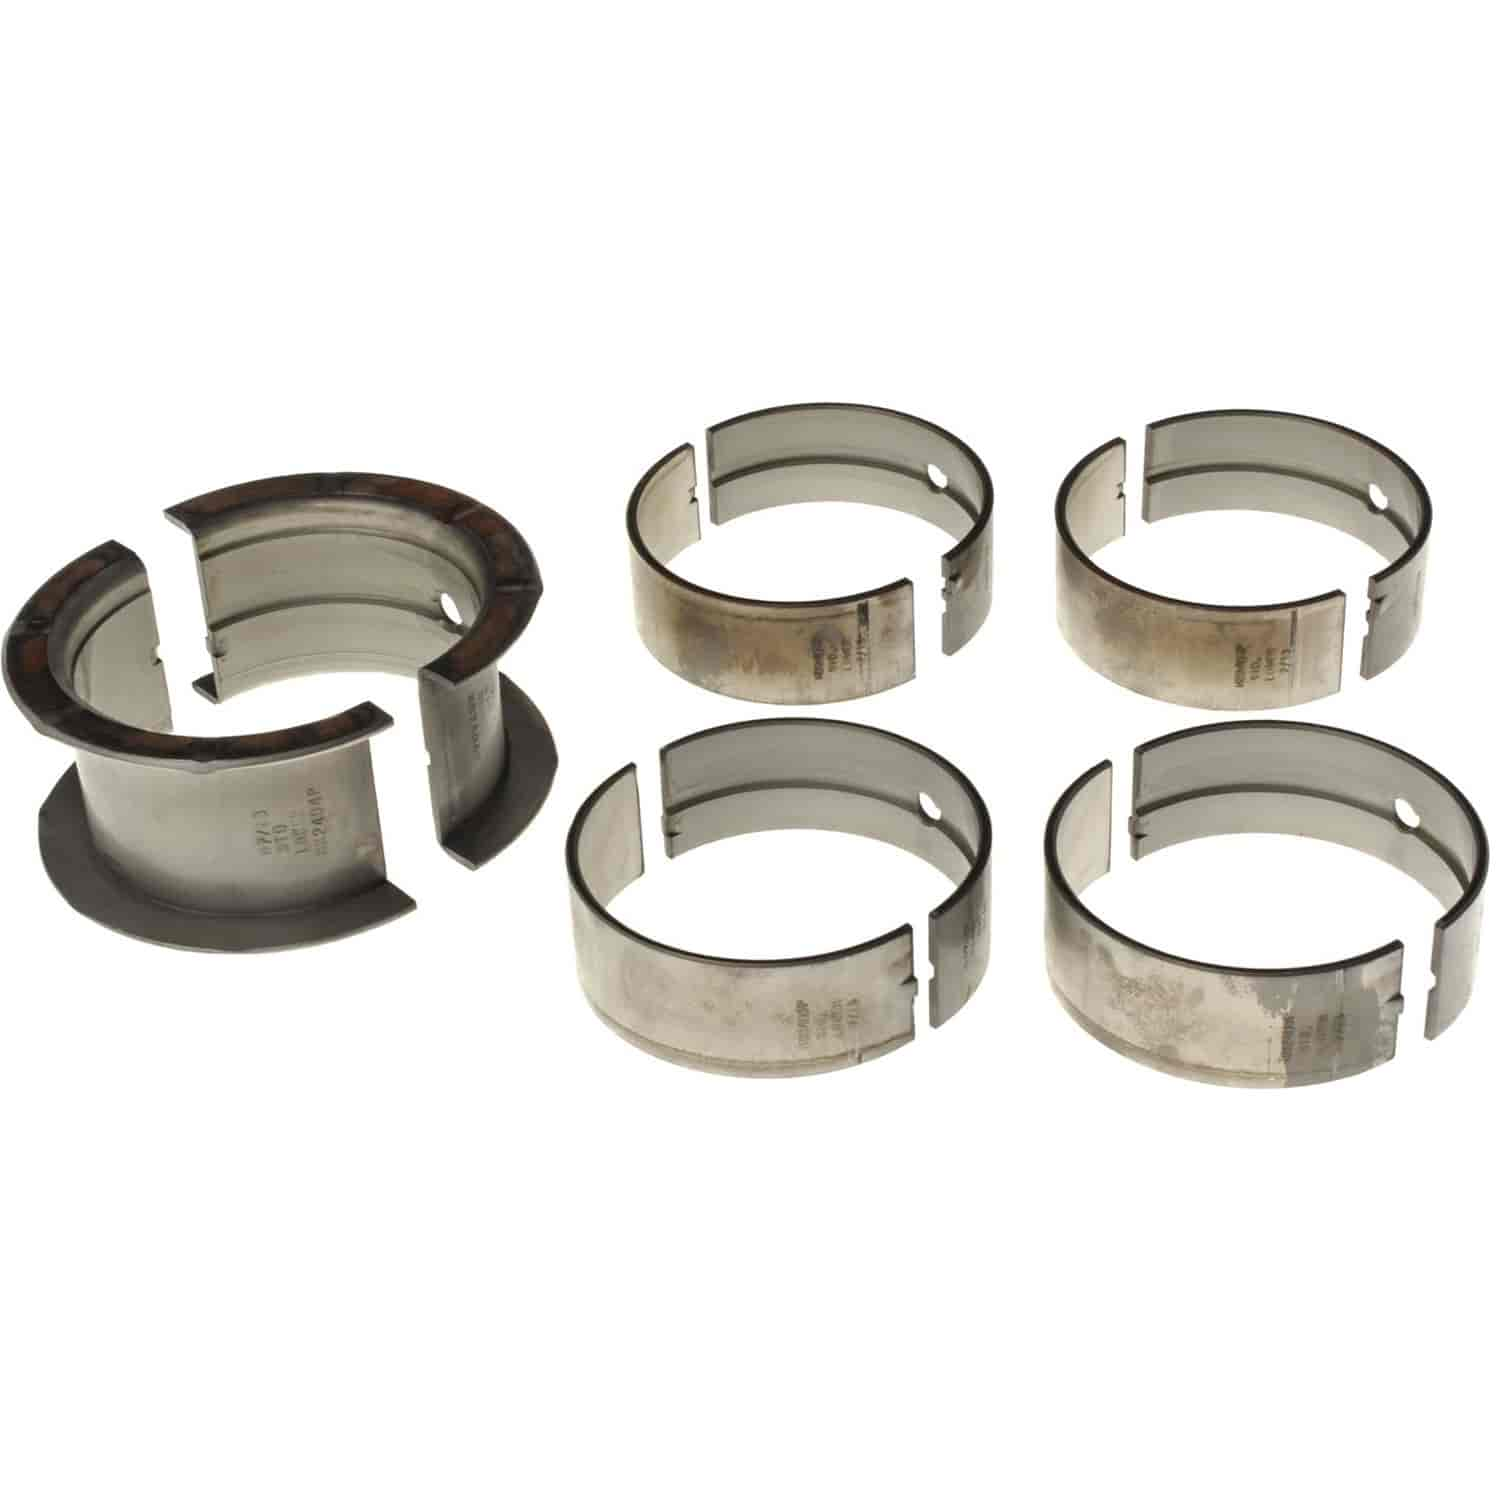 Clevite MS829P30 - Clevite 77 GM High-Performance Bearings